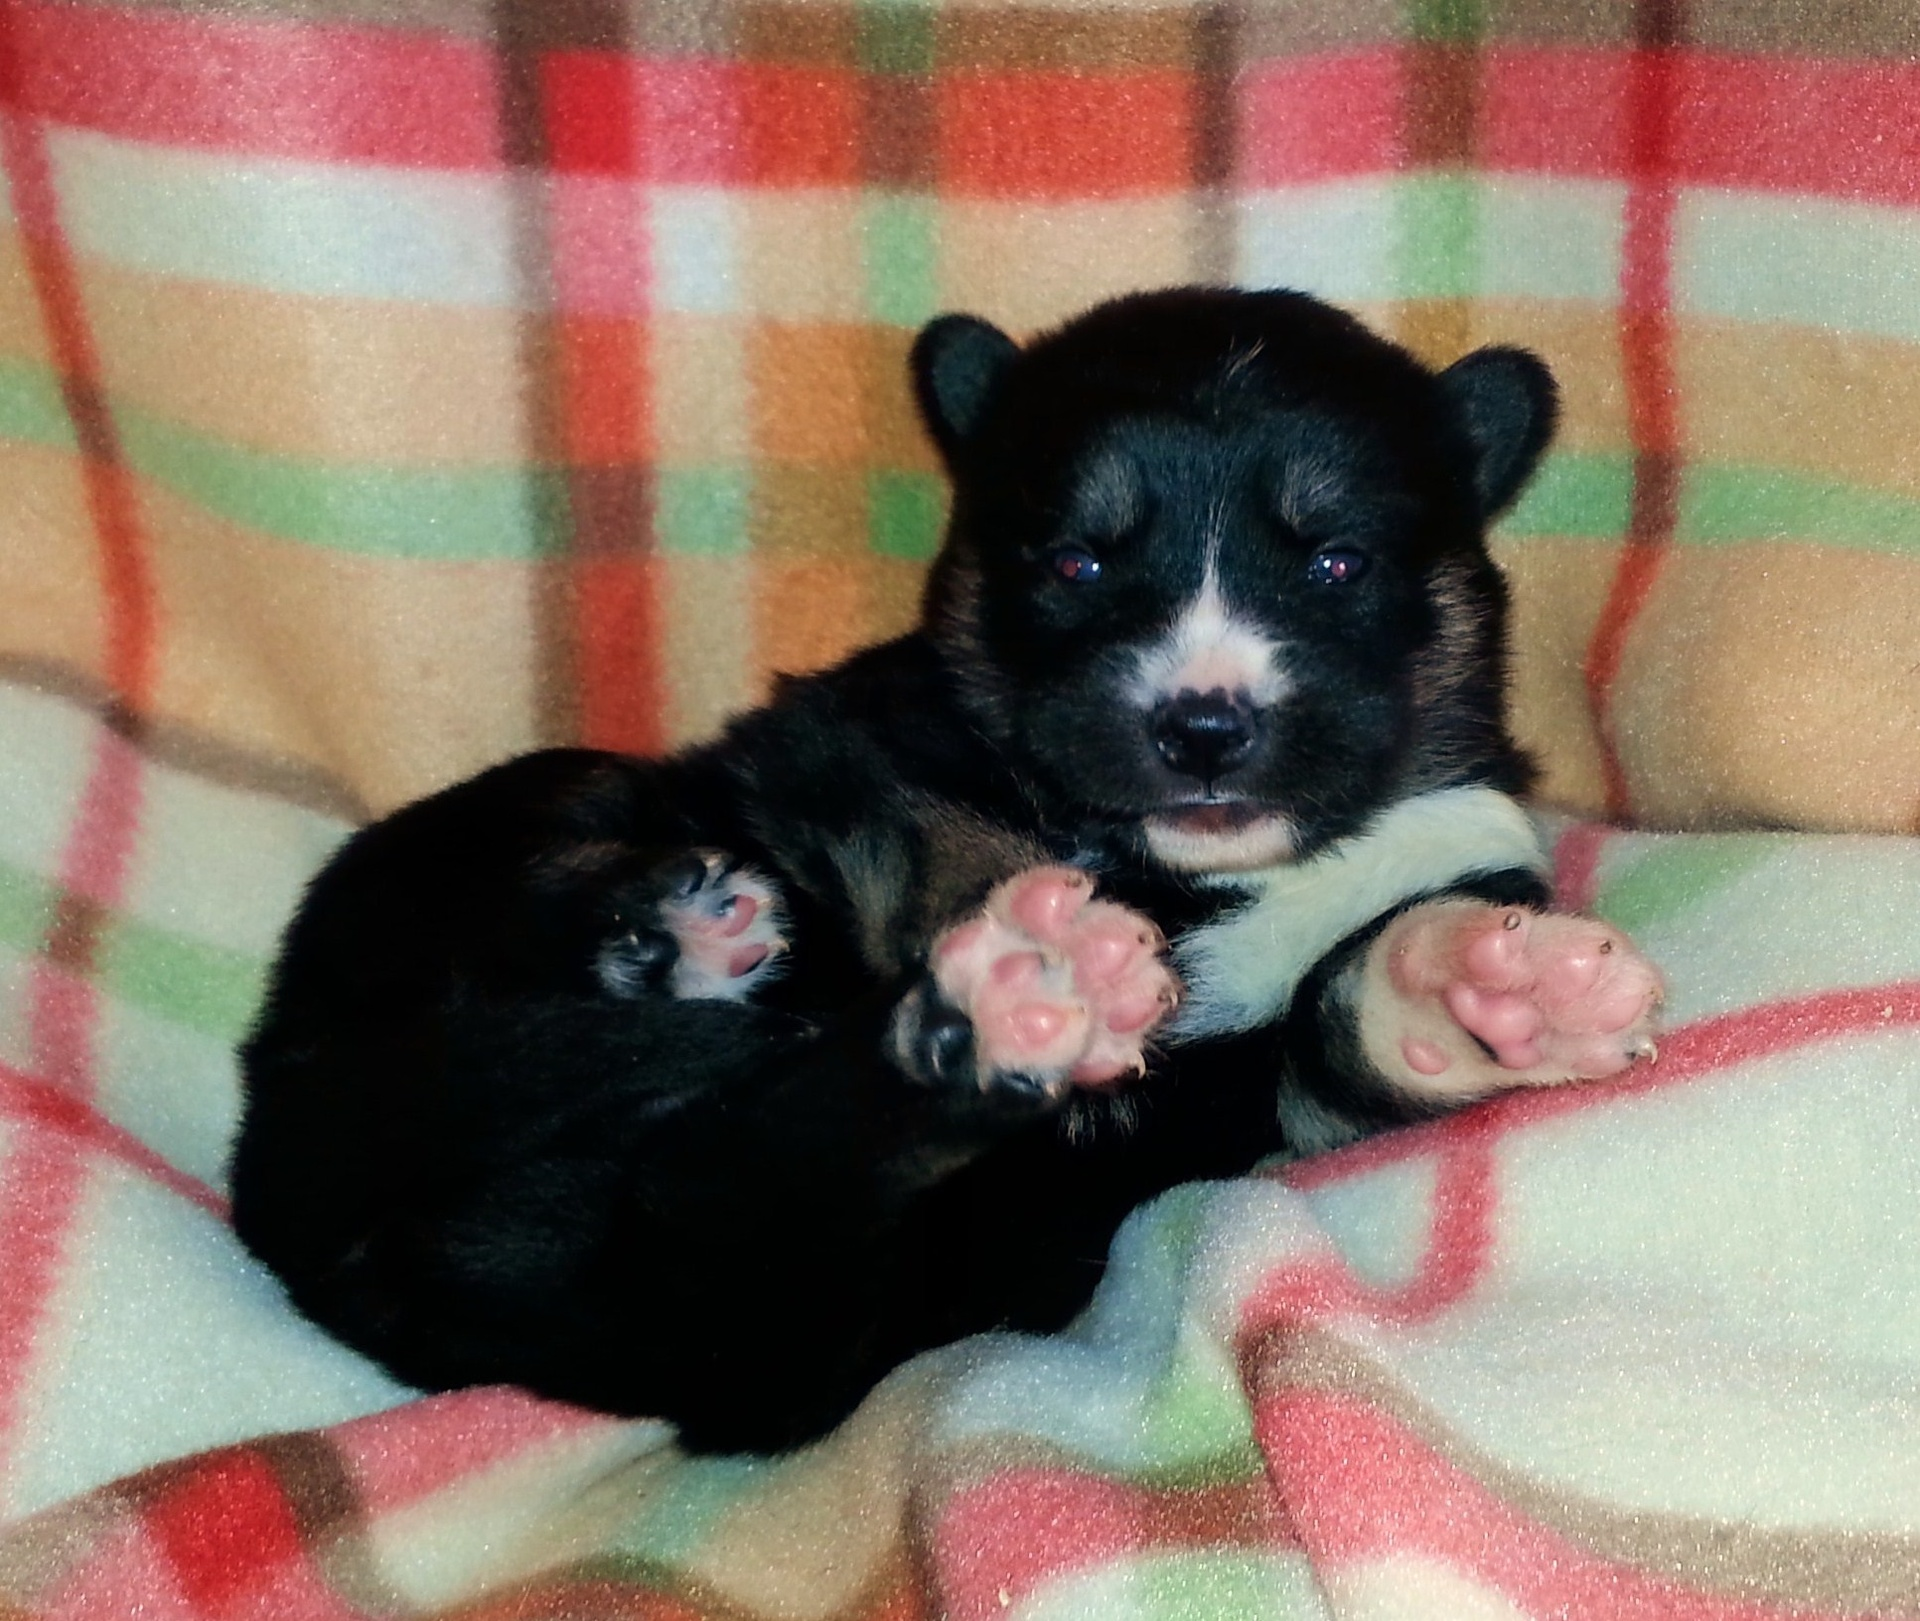 Female - Black and Tan (dilute)